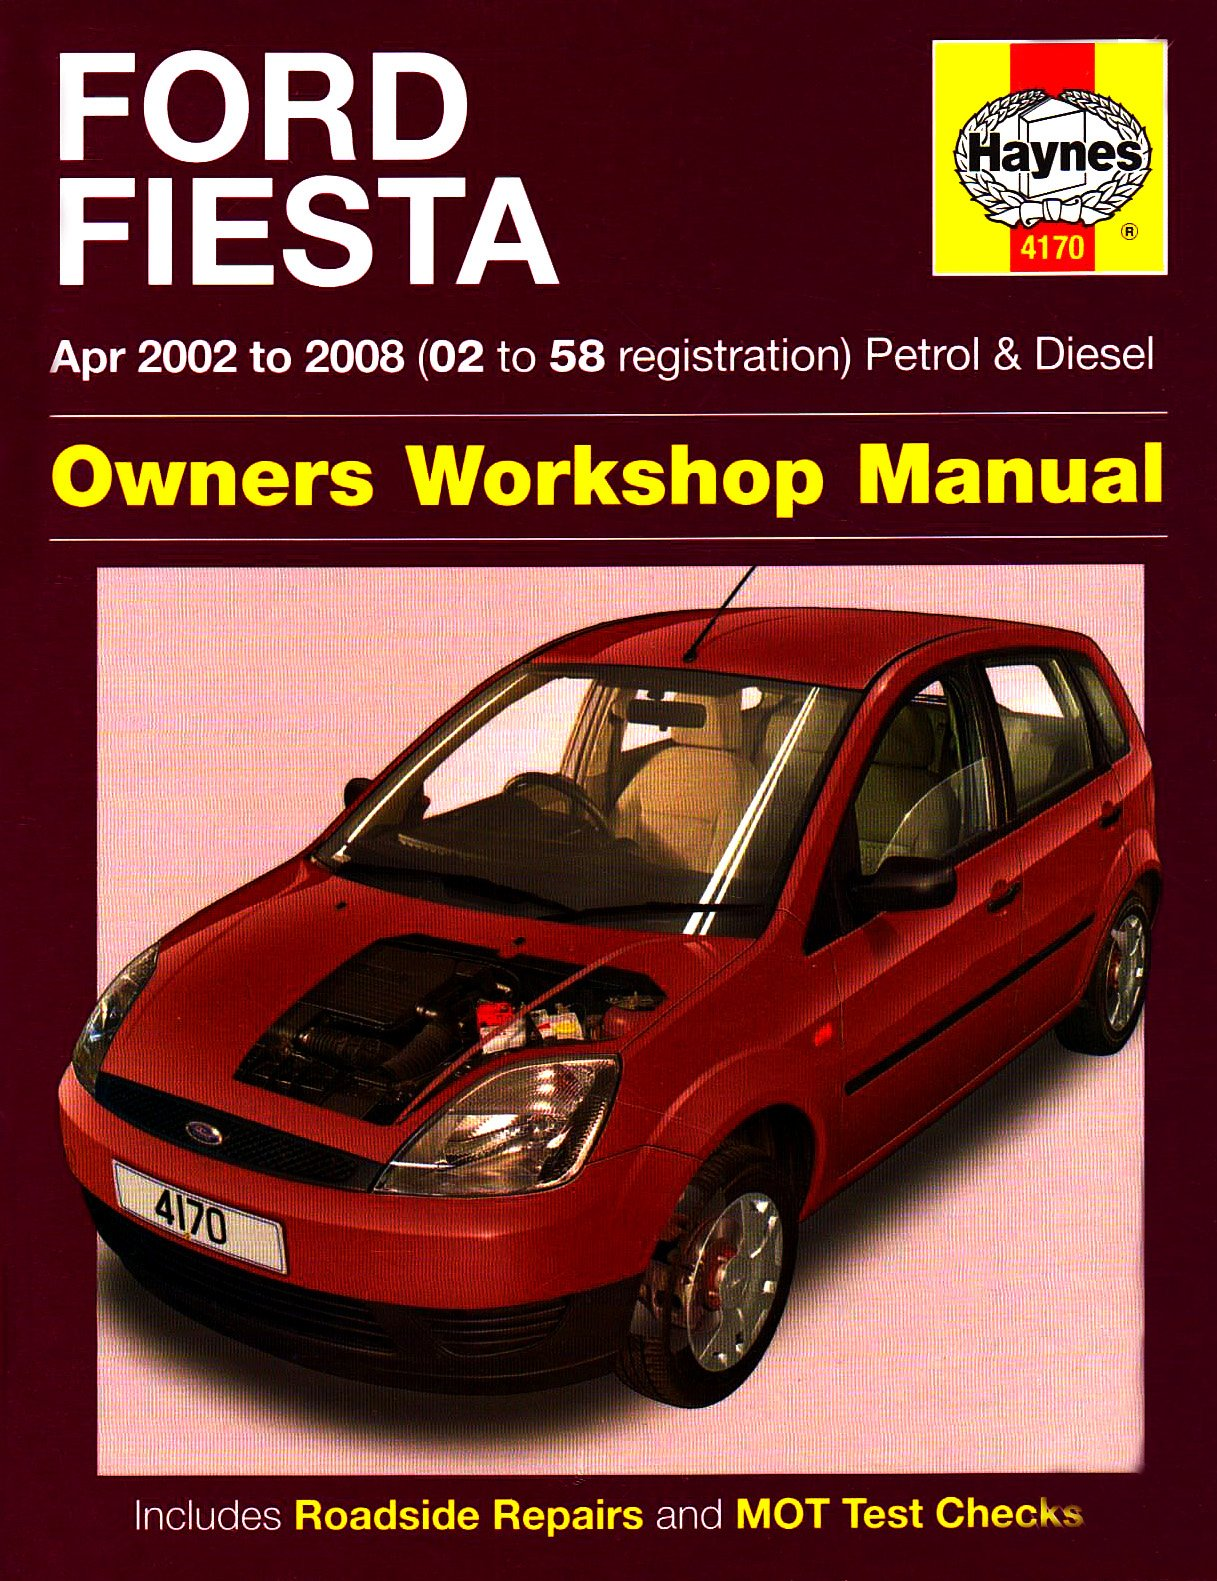 Ford Fiesta Owners Workshop Manual: 2002 to 2008 (Haynes Service and Repair  Manuals): Amazon.co.uk: R. M. Jex: 0699414004454: Books